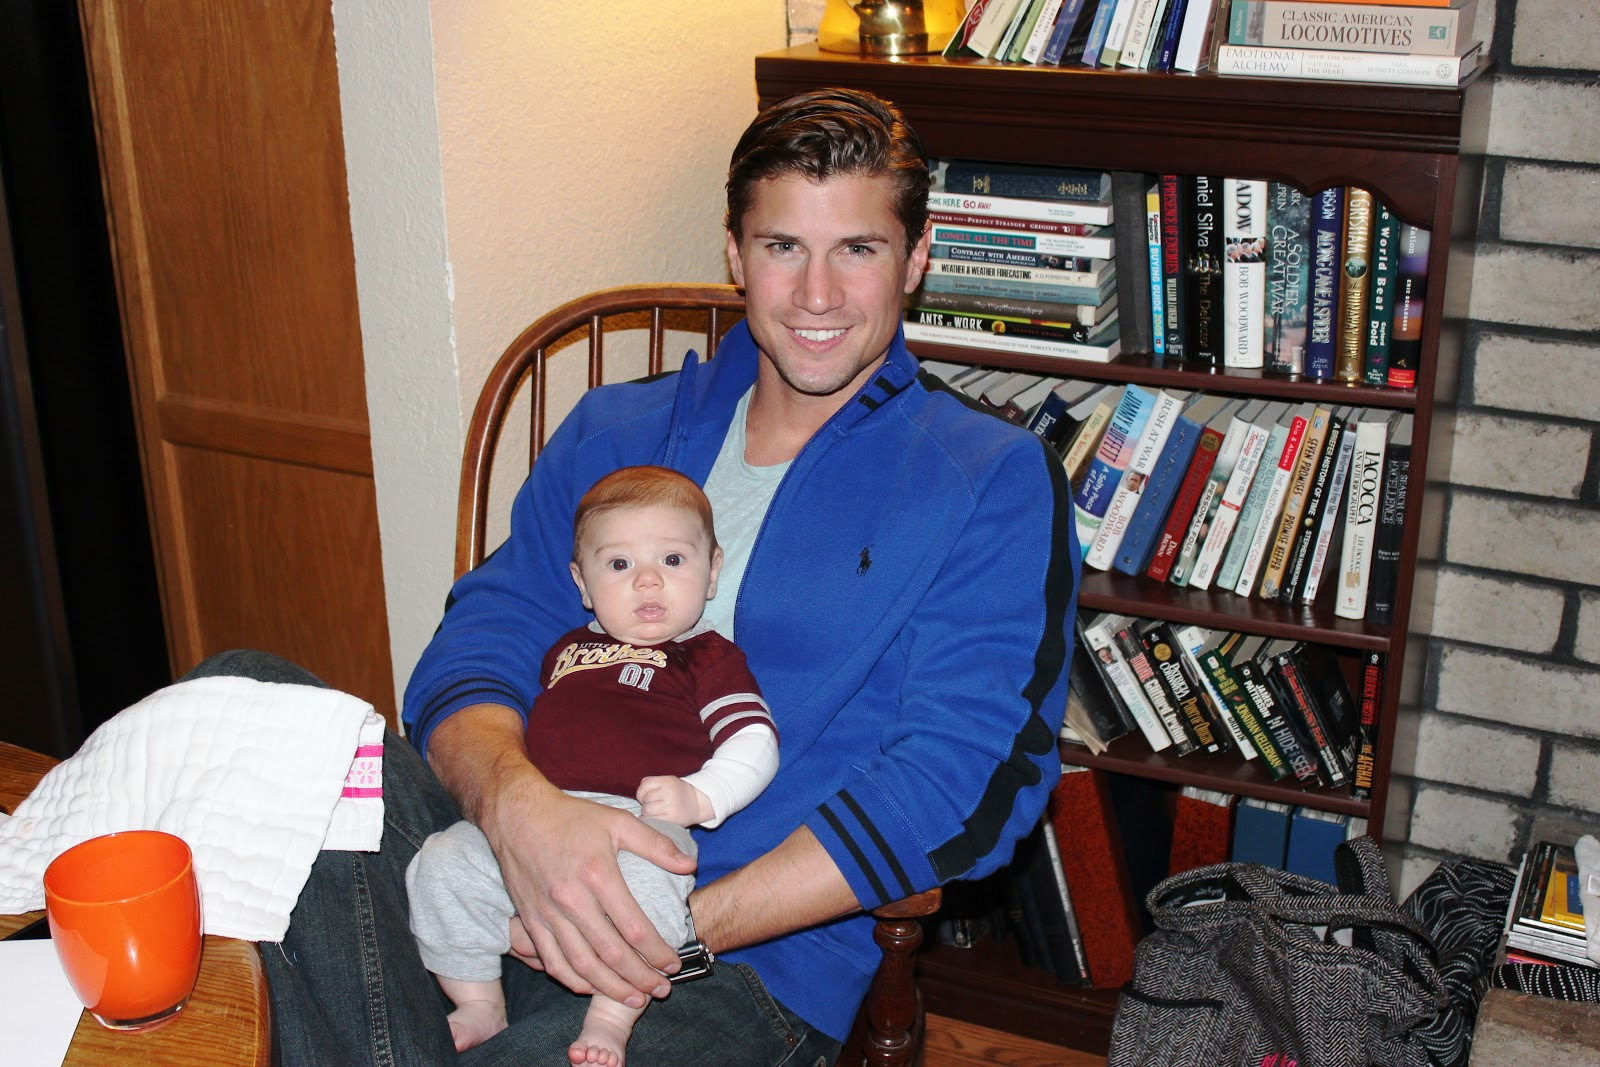 Credit: Meghan's Blog Photo: Drew Kenney with nephew Johnny